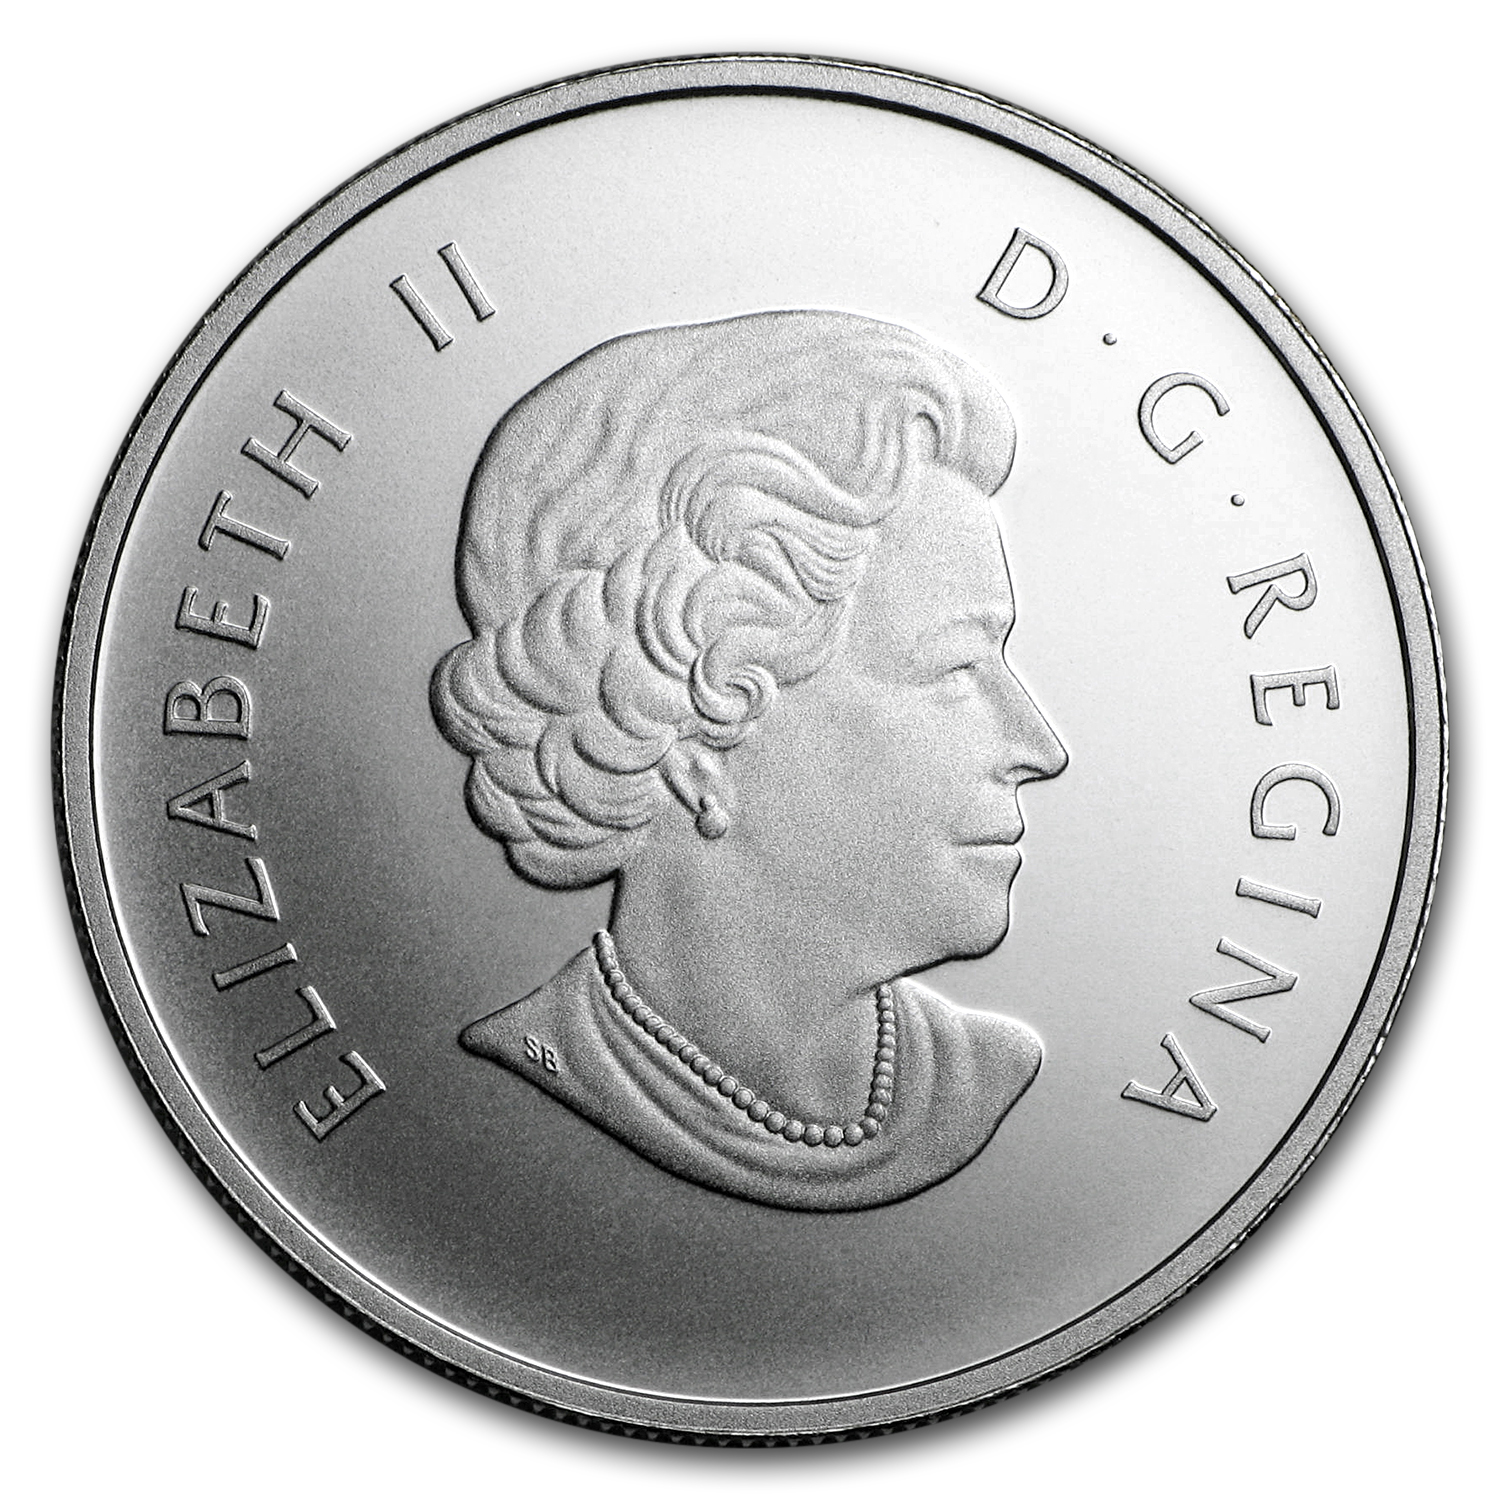 2013 Canada 1/2 oz Silver $10 Beaver (Capsule Only)